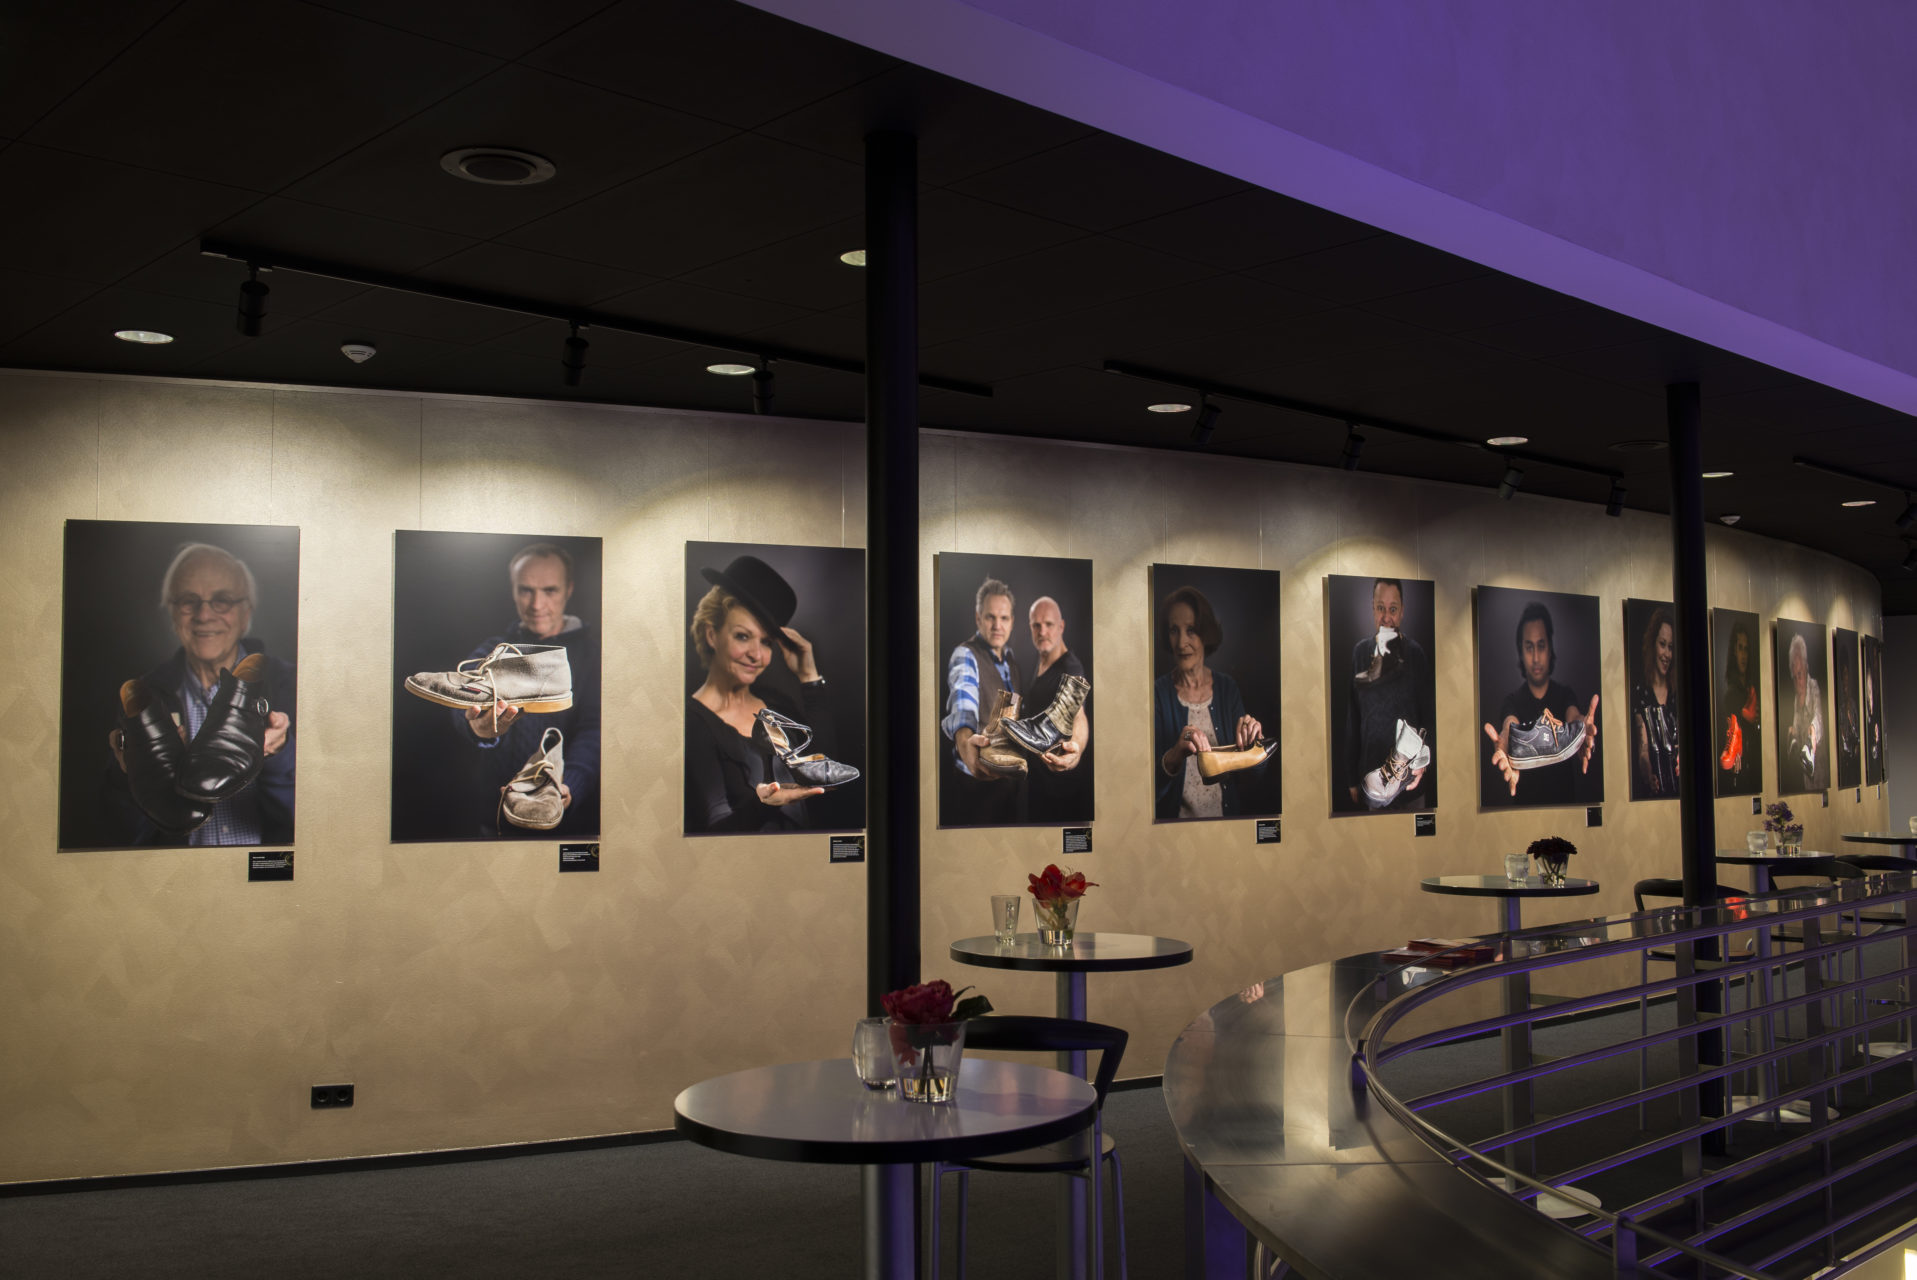 Expositie in theater de Leest